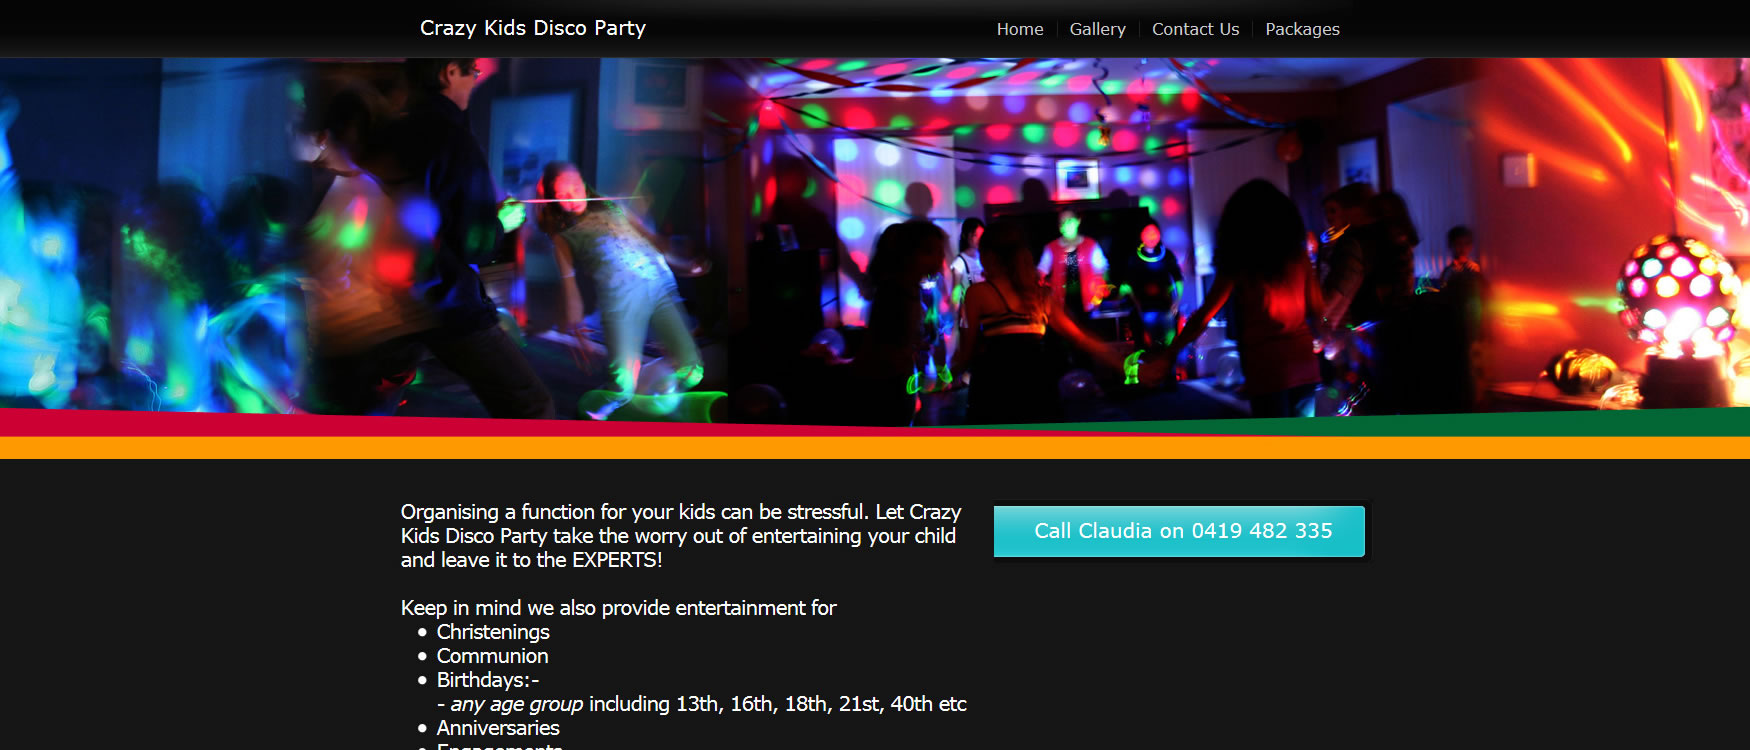 Crazy Kids Disco Party